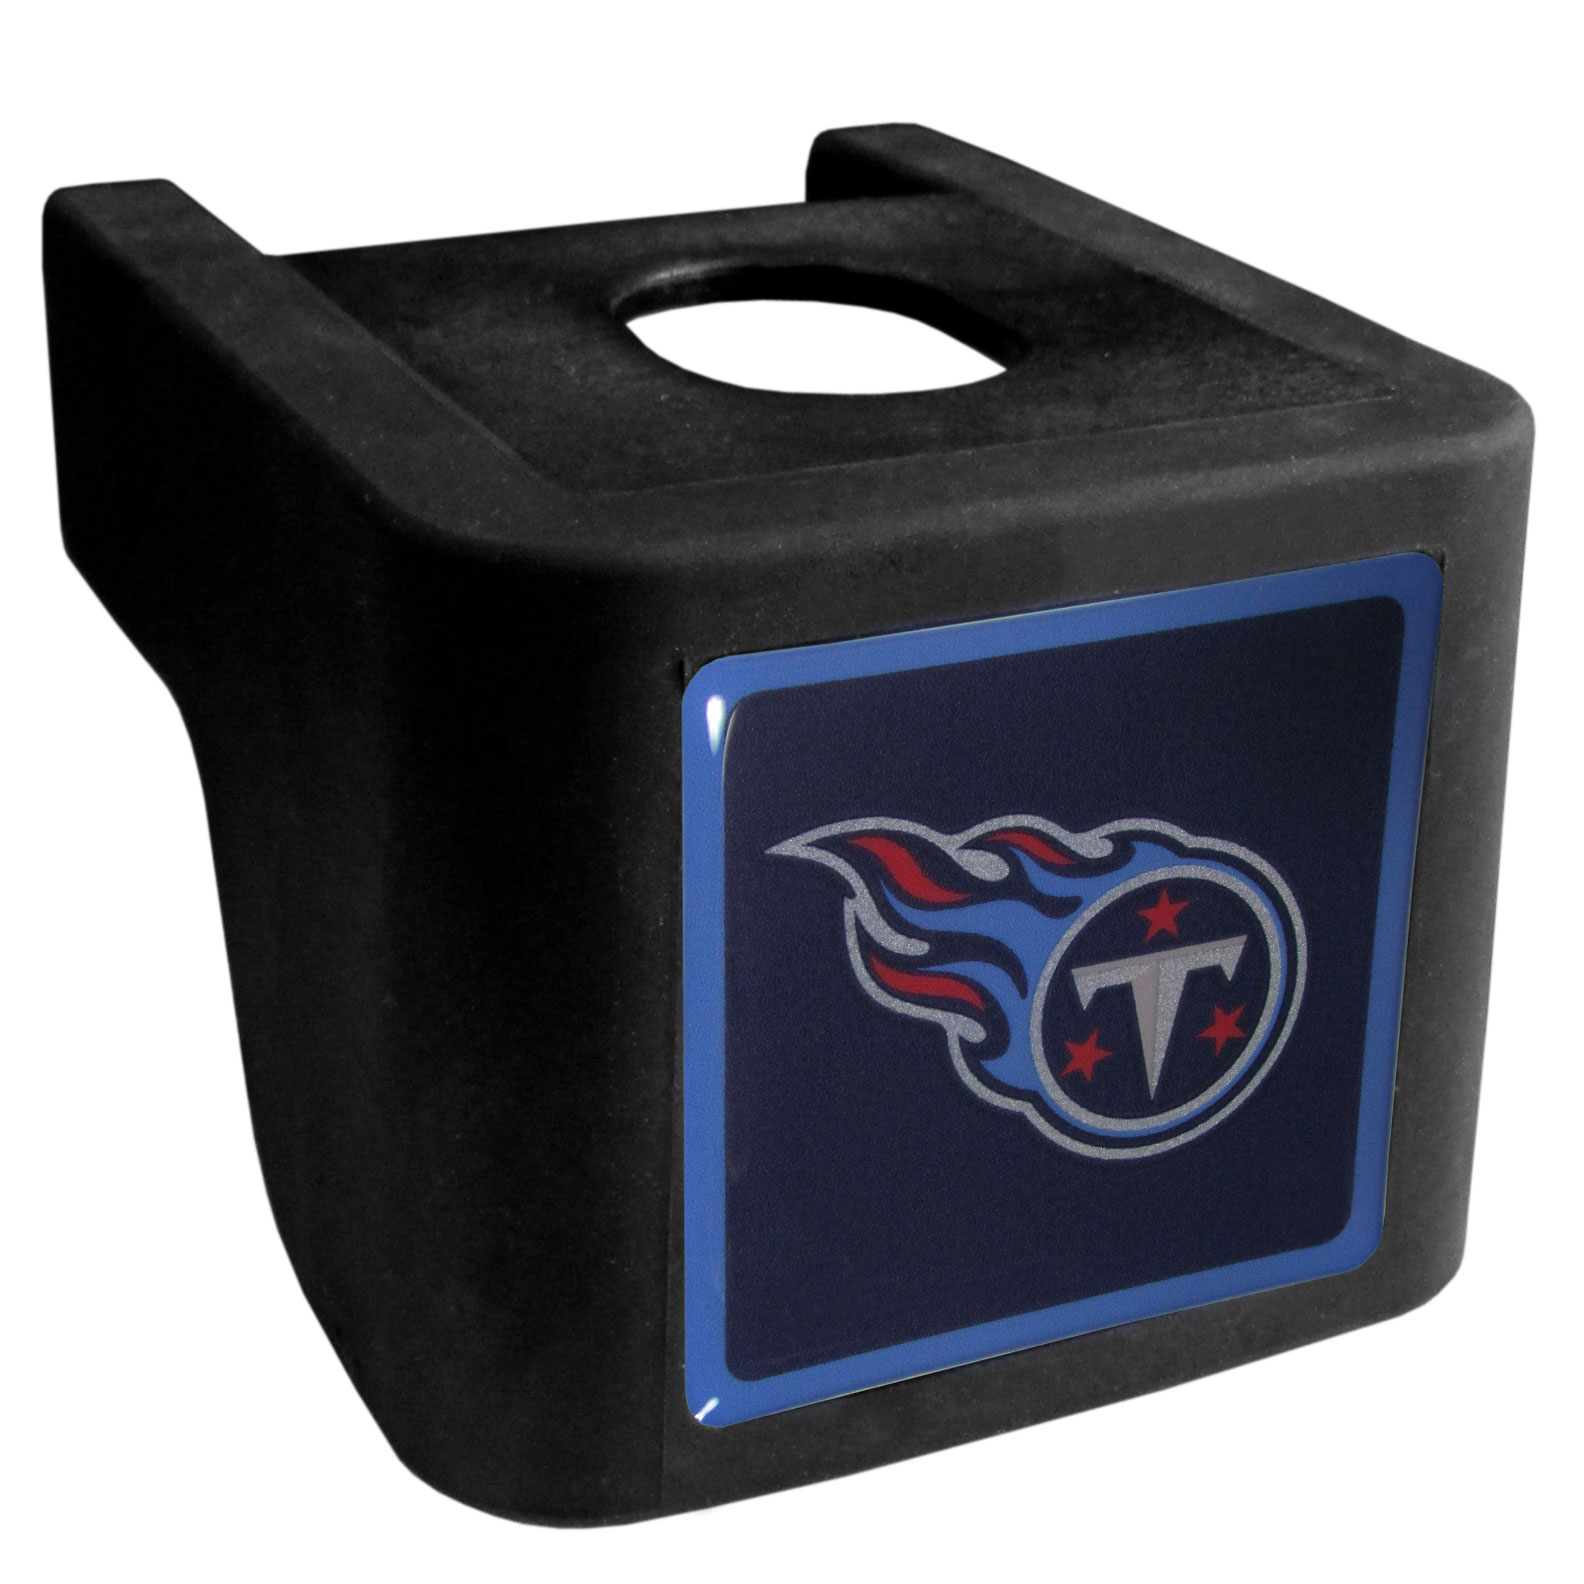 Tennessee Titans Shin Shield Hitch Cover - This unique hitch cover features a large Tennessee Titans logo. If you have ever hooked up a trailer or boat your have probably smashed your shins on the ball hitch a few times. This revolutionary shin shield hitch cover provides your much abused shins with the protection they deserve! The tough rubber hitch is rated to work with Class V hitch receivers hauling up to 17,000 gross trailer weight and 1,700 tongue weight allowing you to leave it on while hauling.